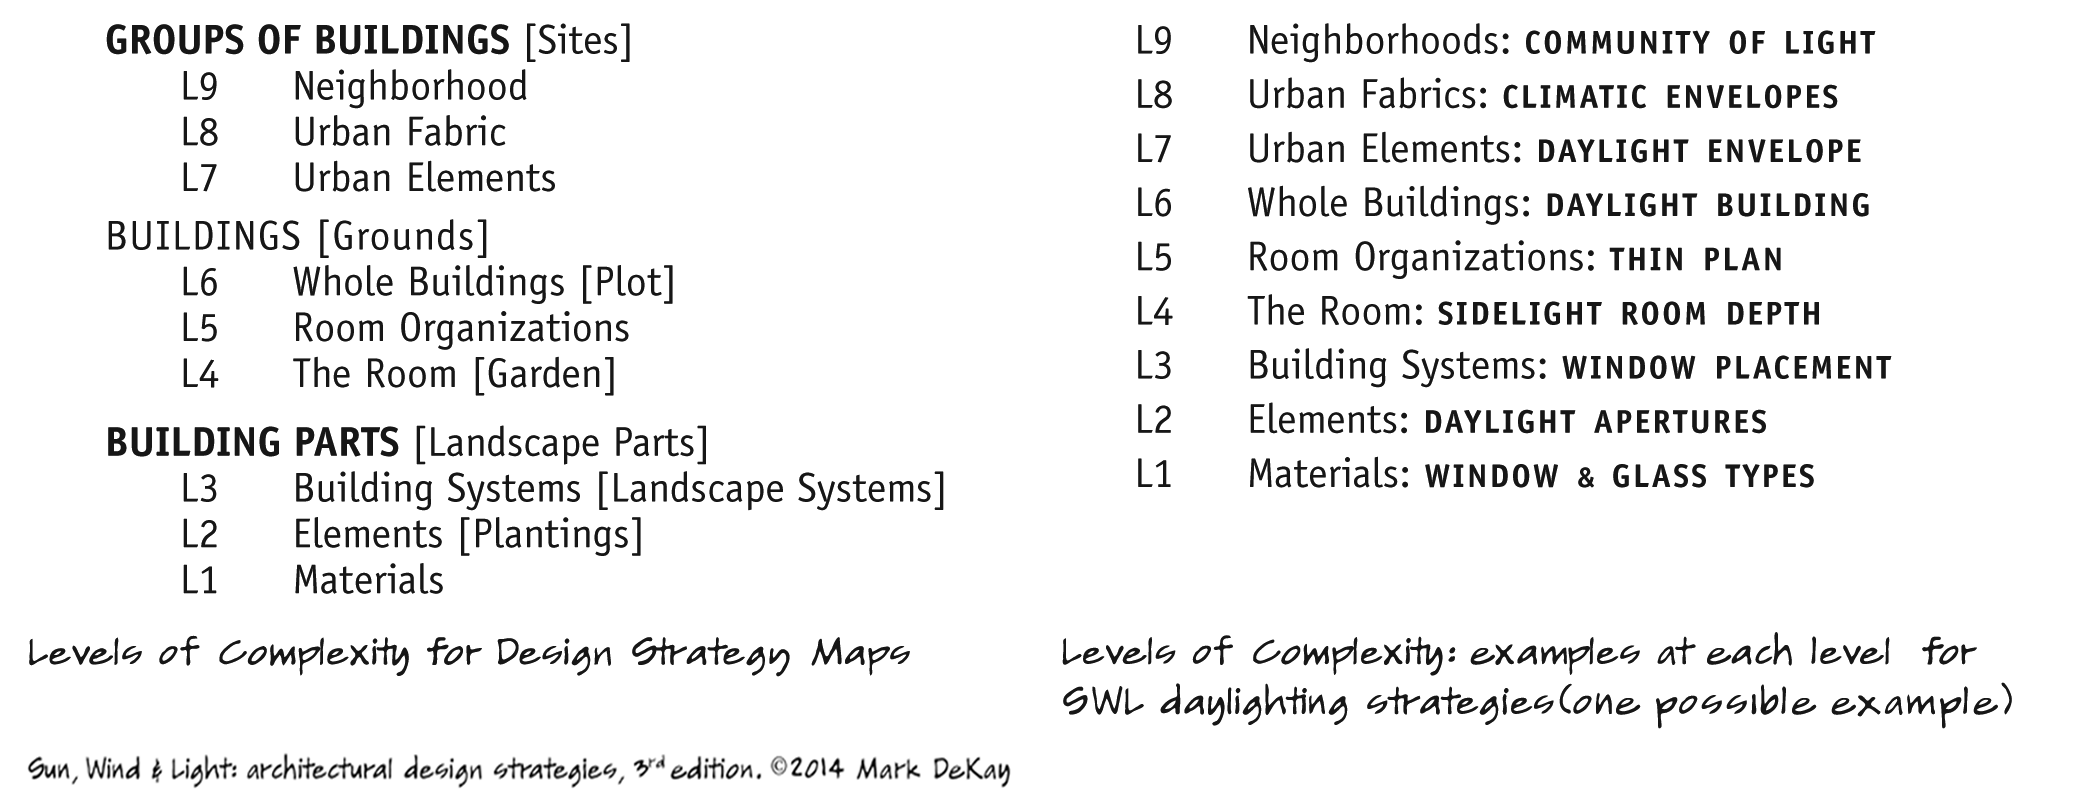 p28 Levels of Complexity